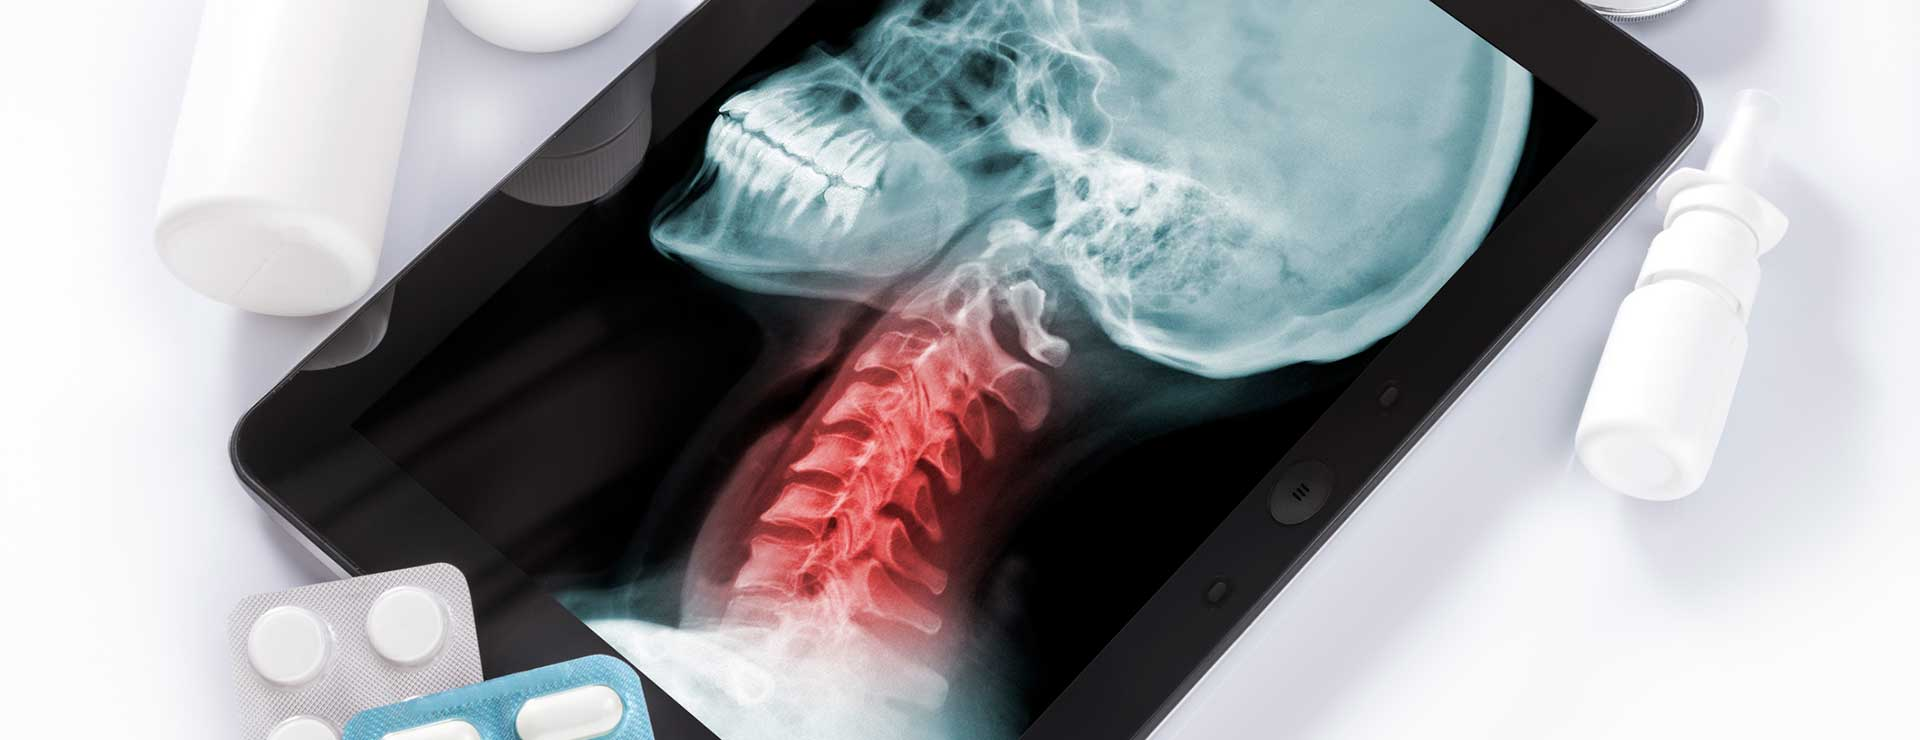 X-ray of a neck displayed on an iPad